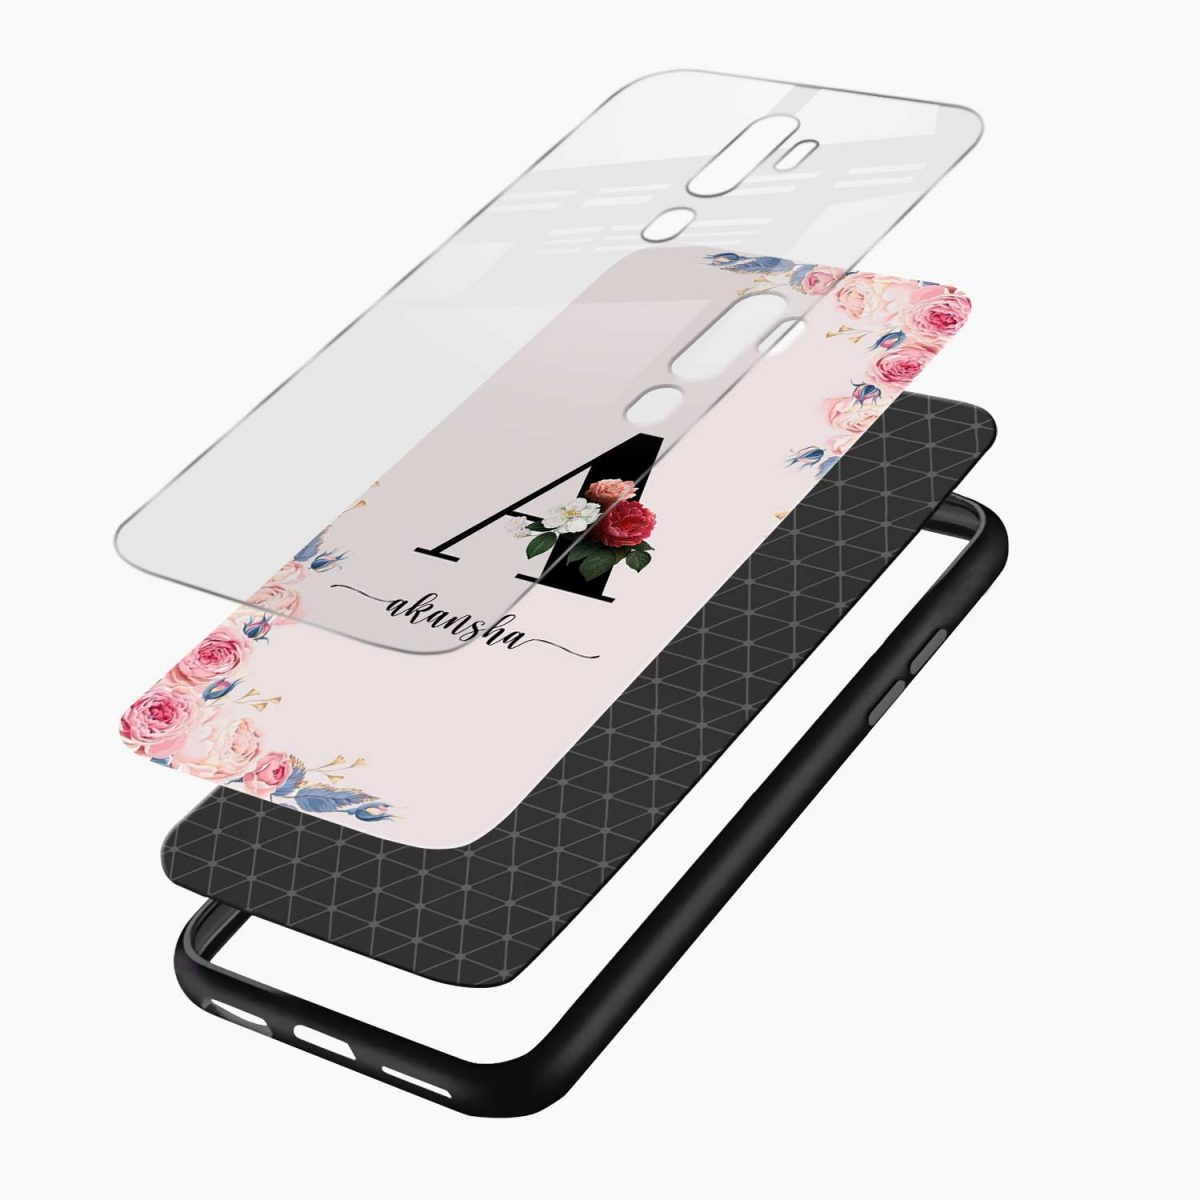 floral name personalised layers view oppo a5 back cover